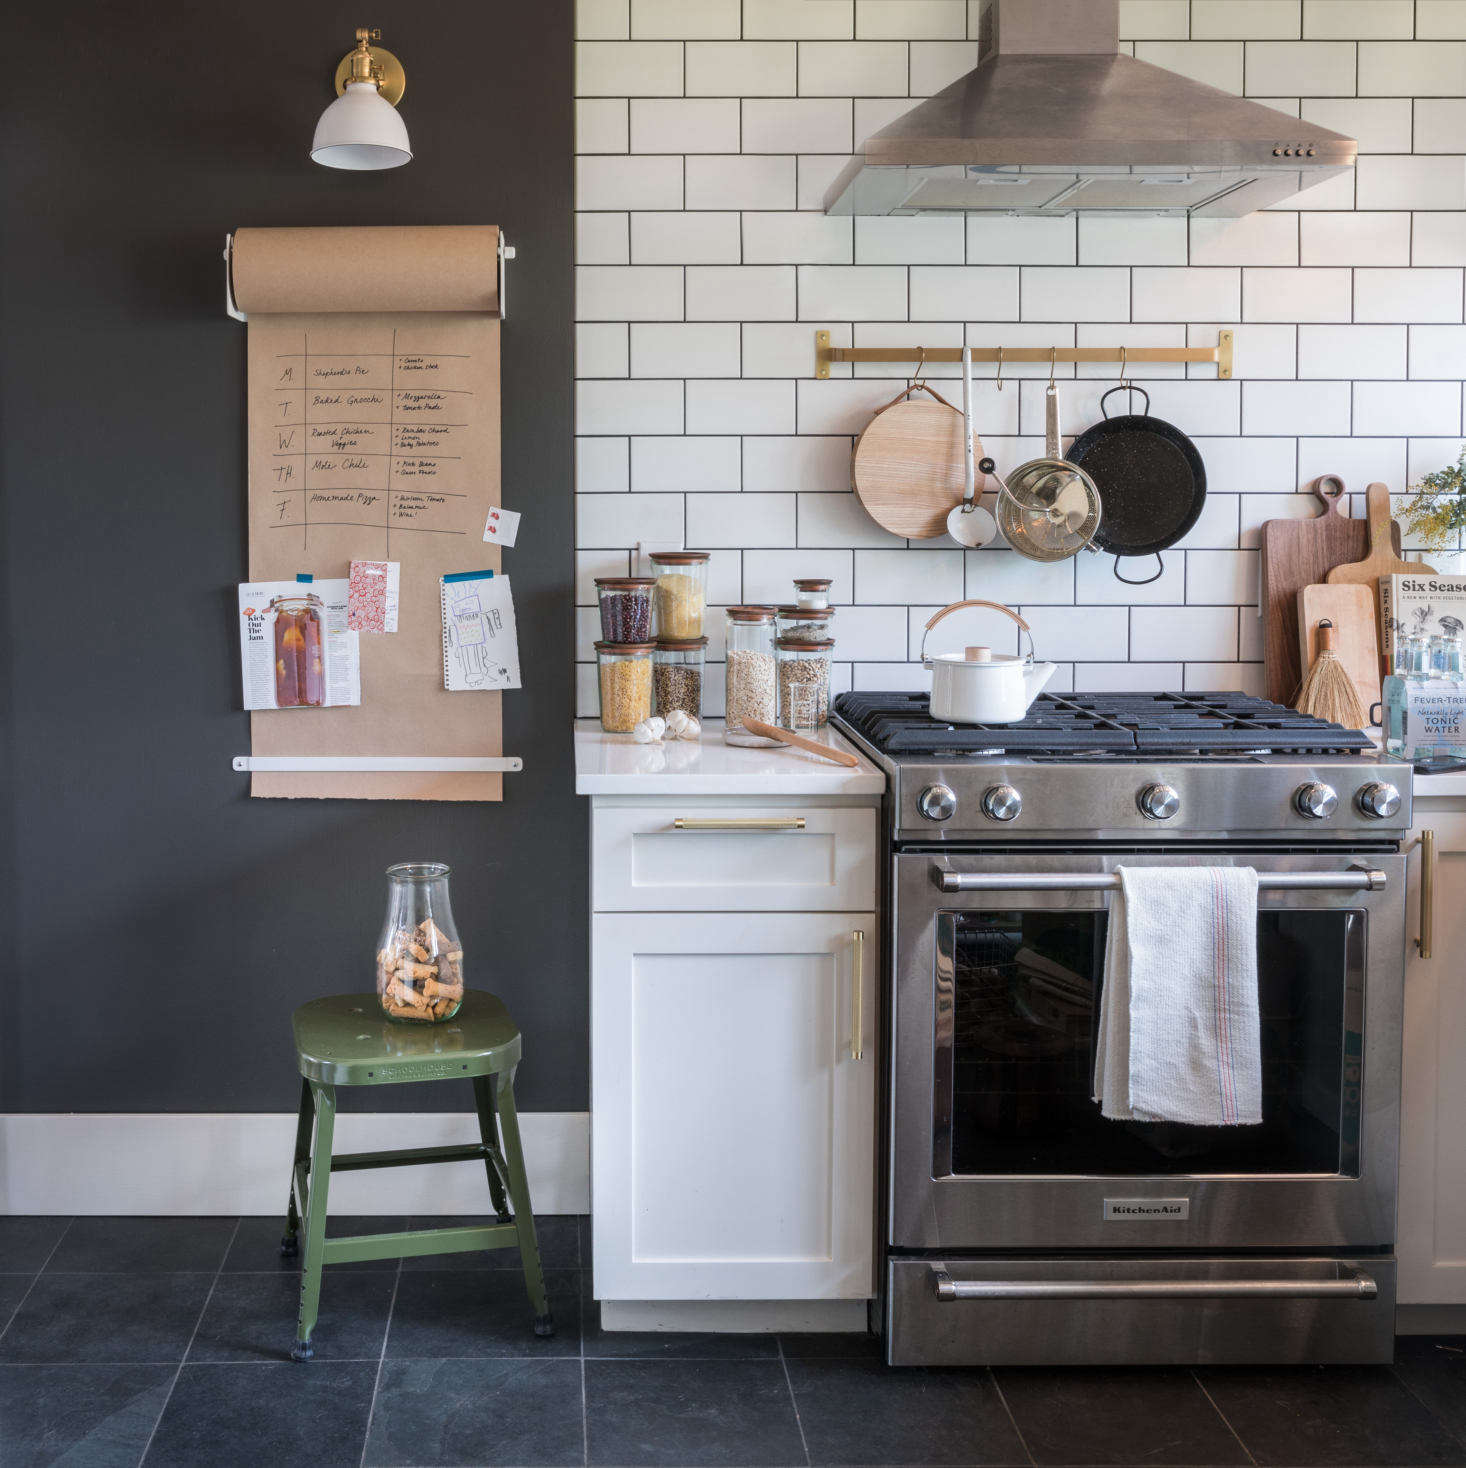 A subway tile kitchen with aWall-Mounted Paper Holder and brass Utility Railfrom Schoolhouse.